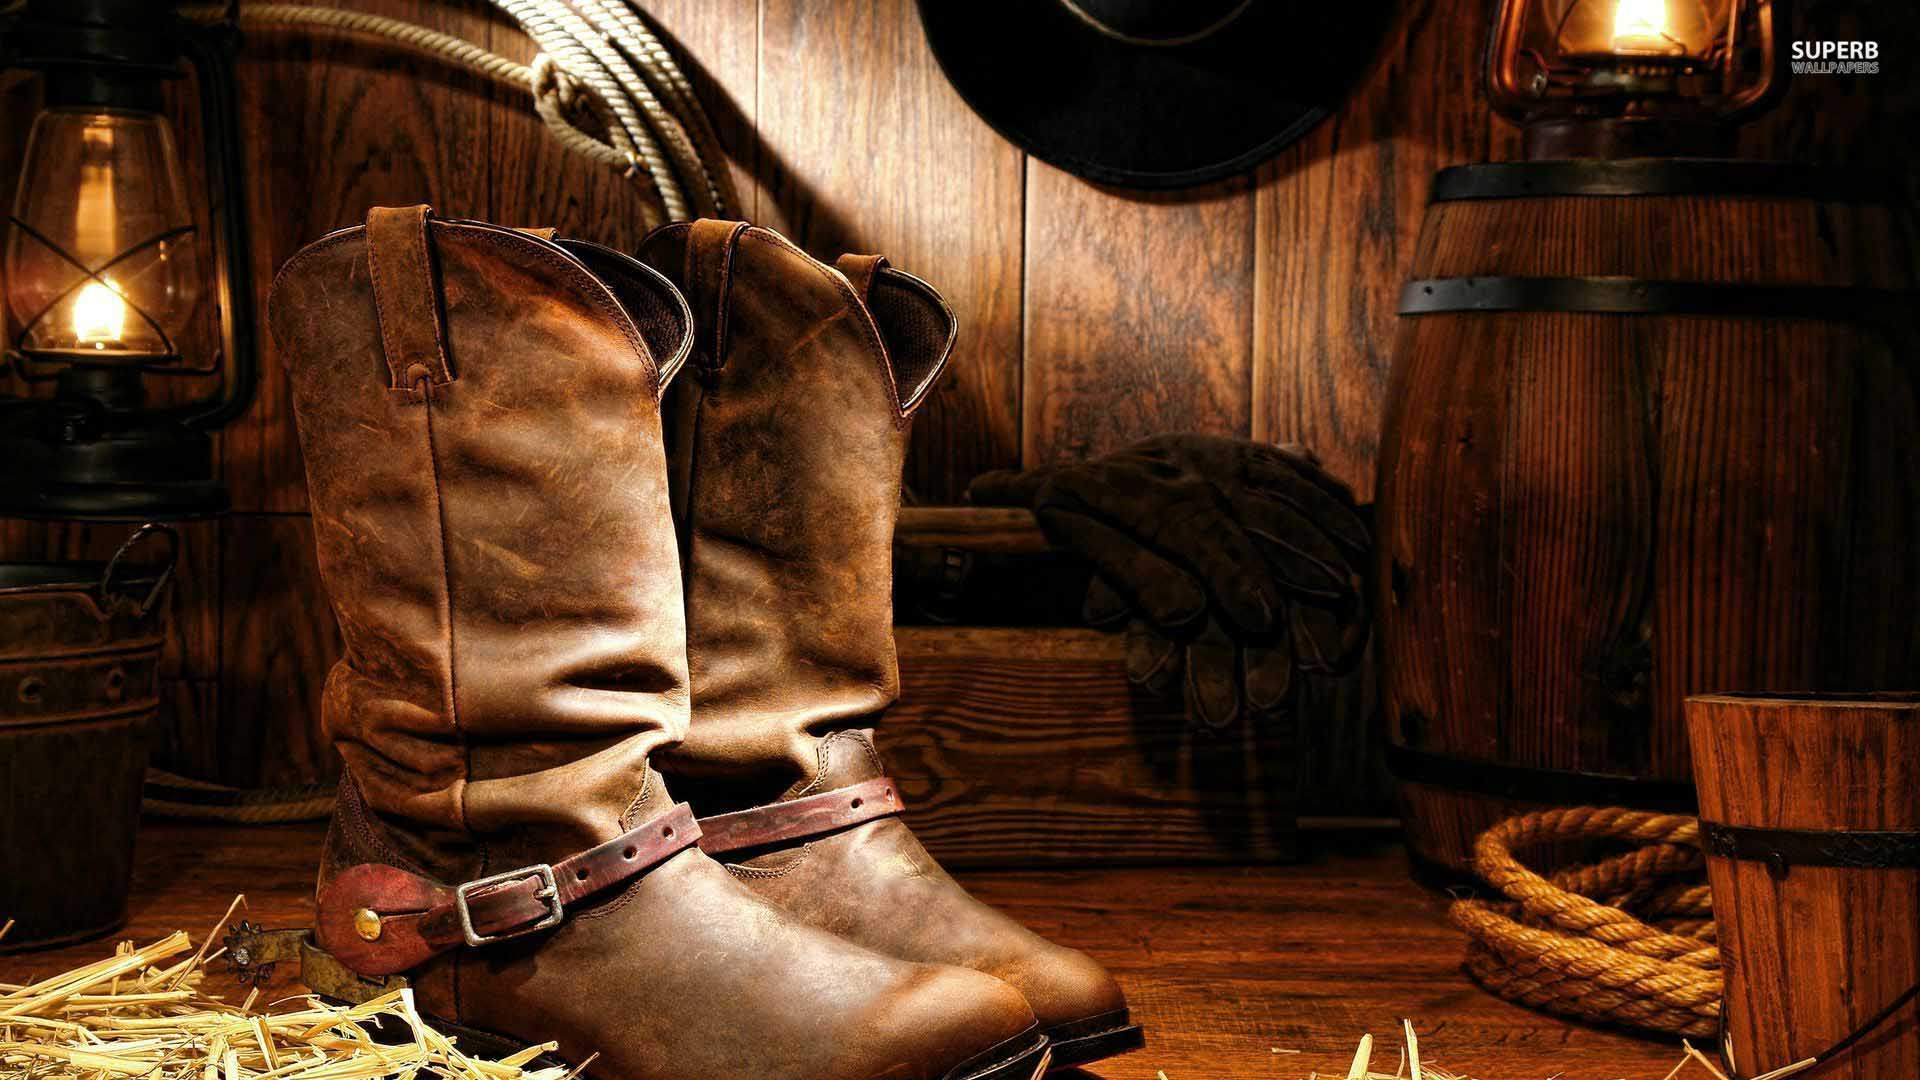 Cowboy Boots Desktop Wallpapers Daily Backgrounds in HD 1920x1080